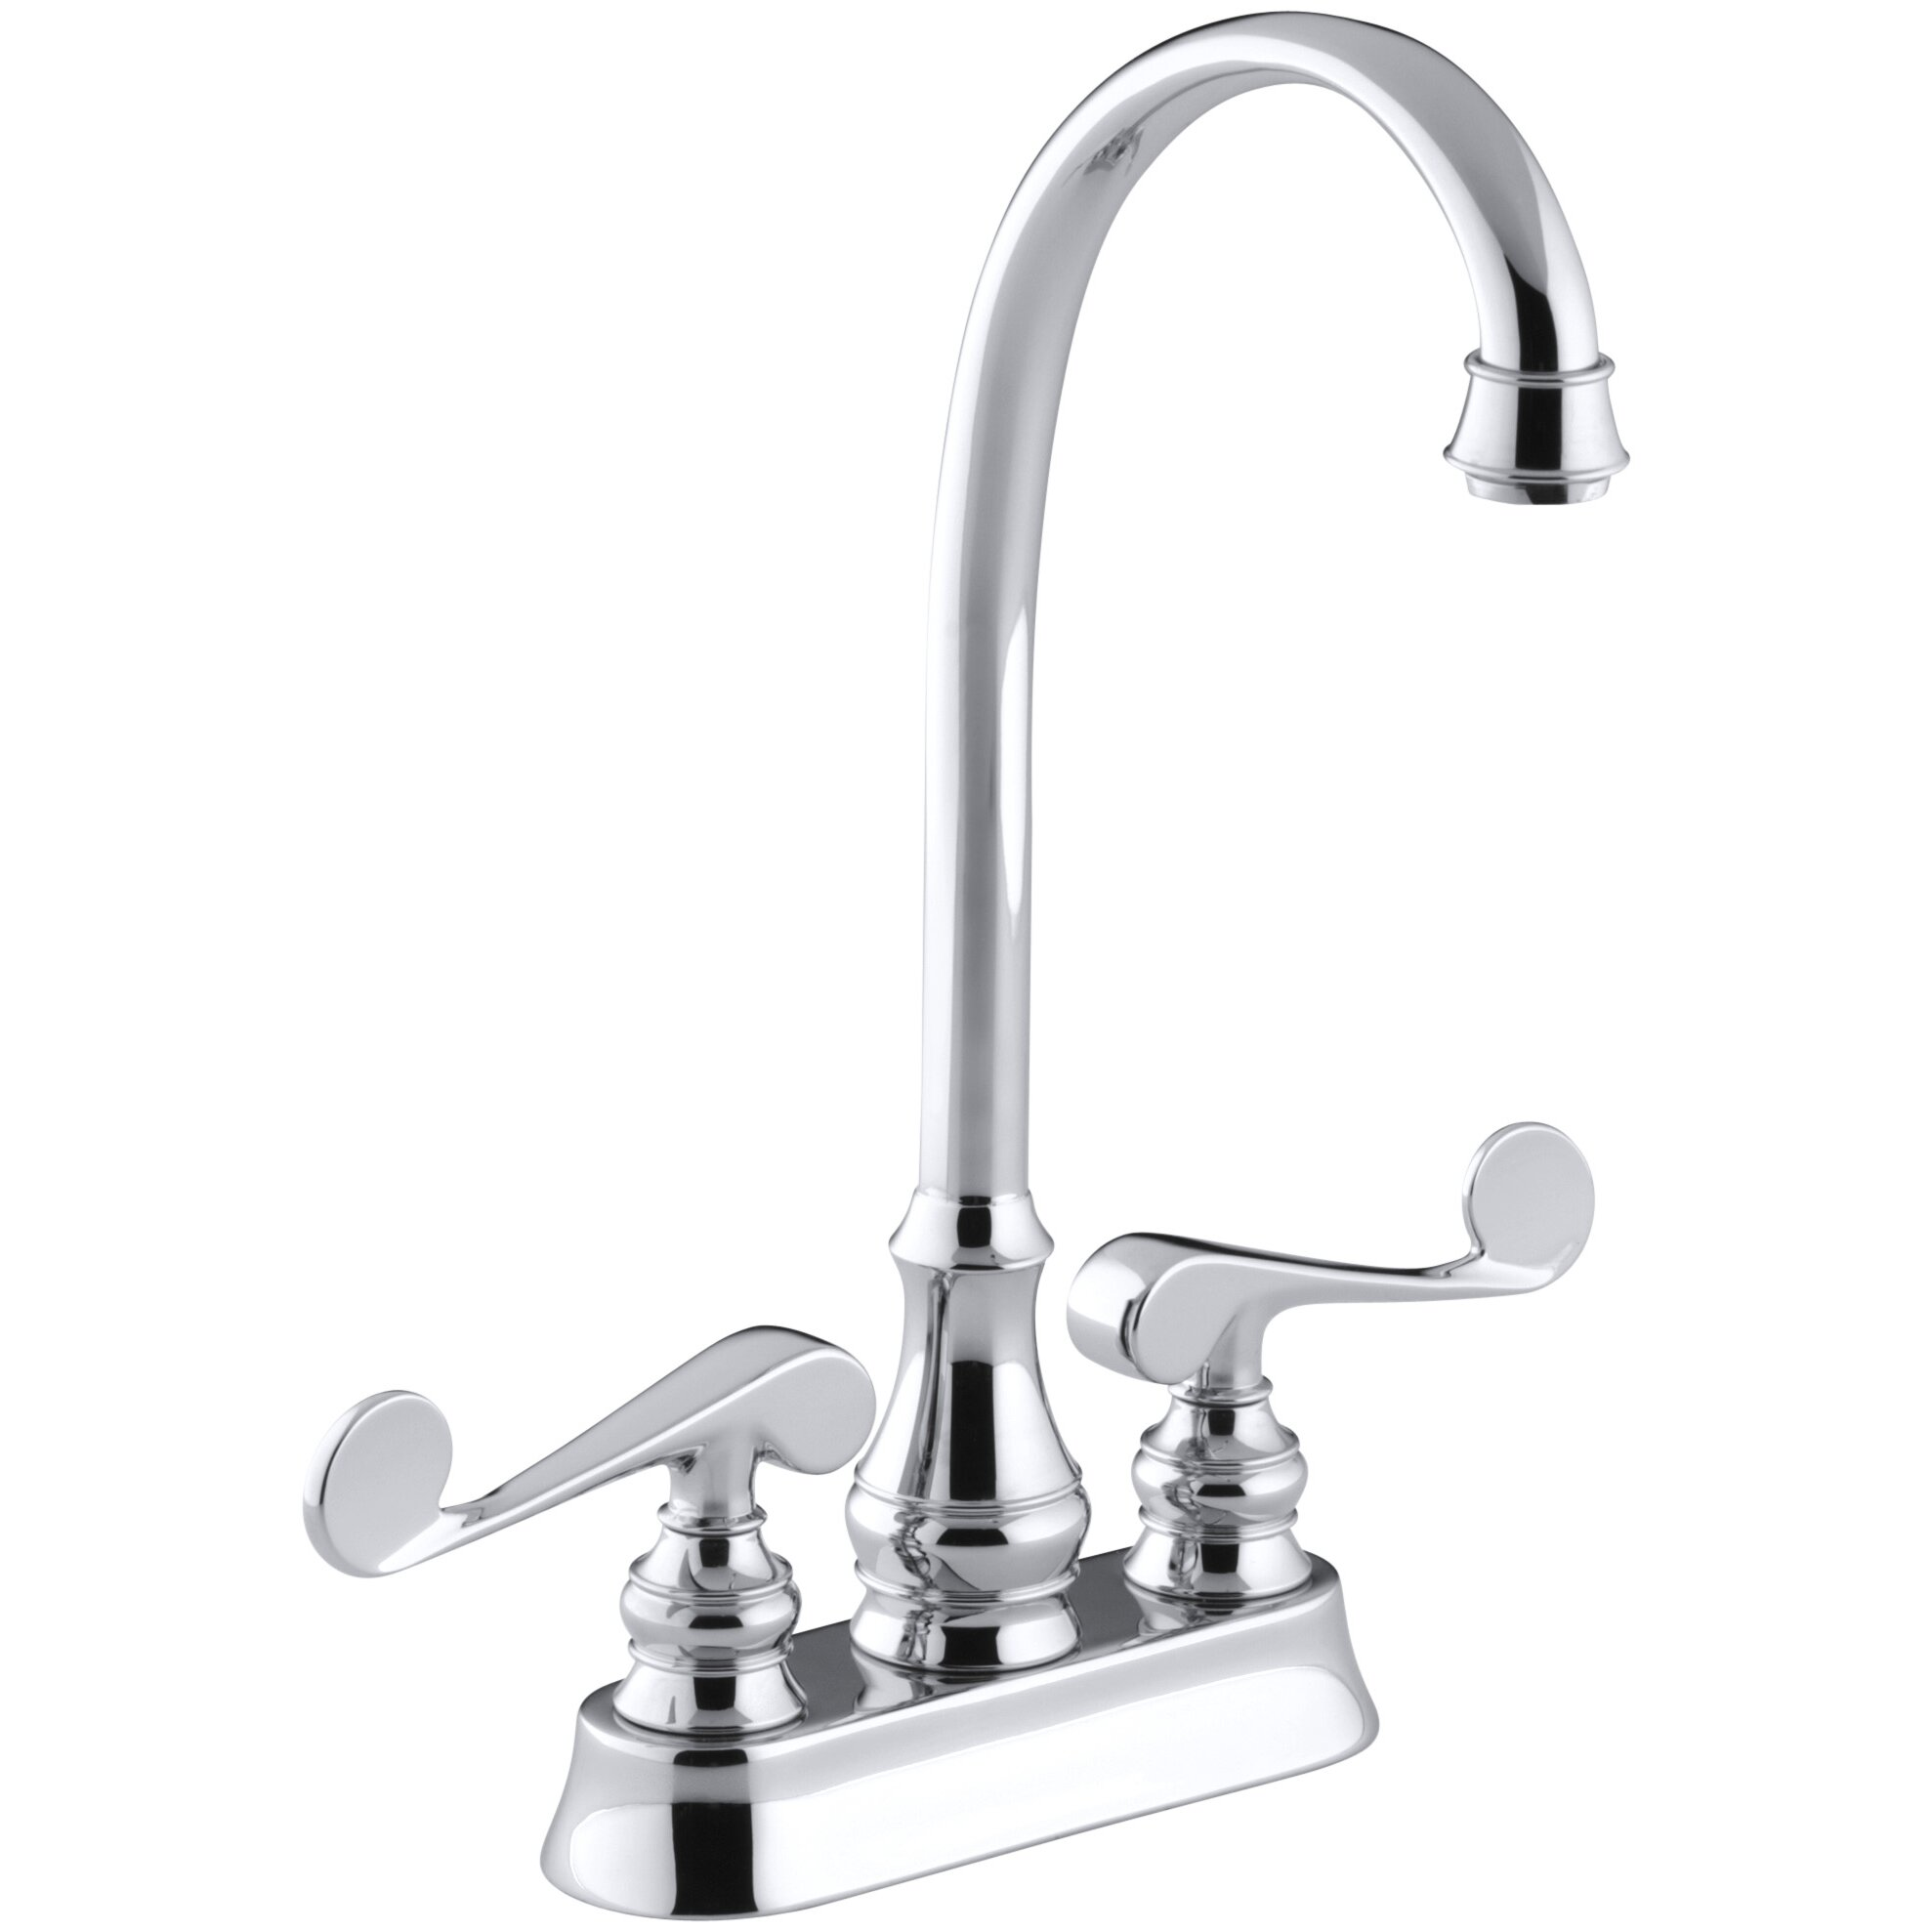 Kohler Revival Two-Hole Centerset Bar Sink Faucet with Scroll Lever ...